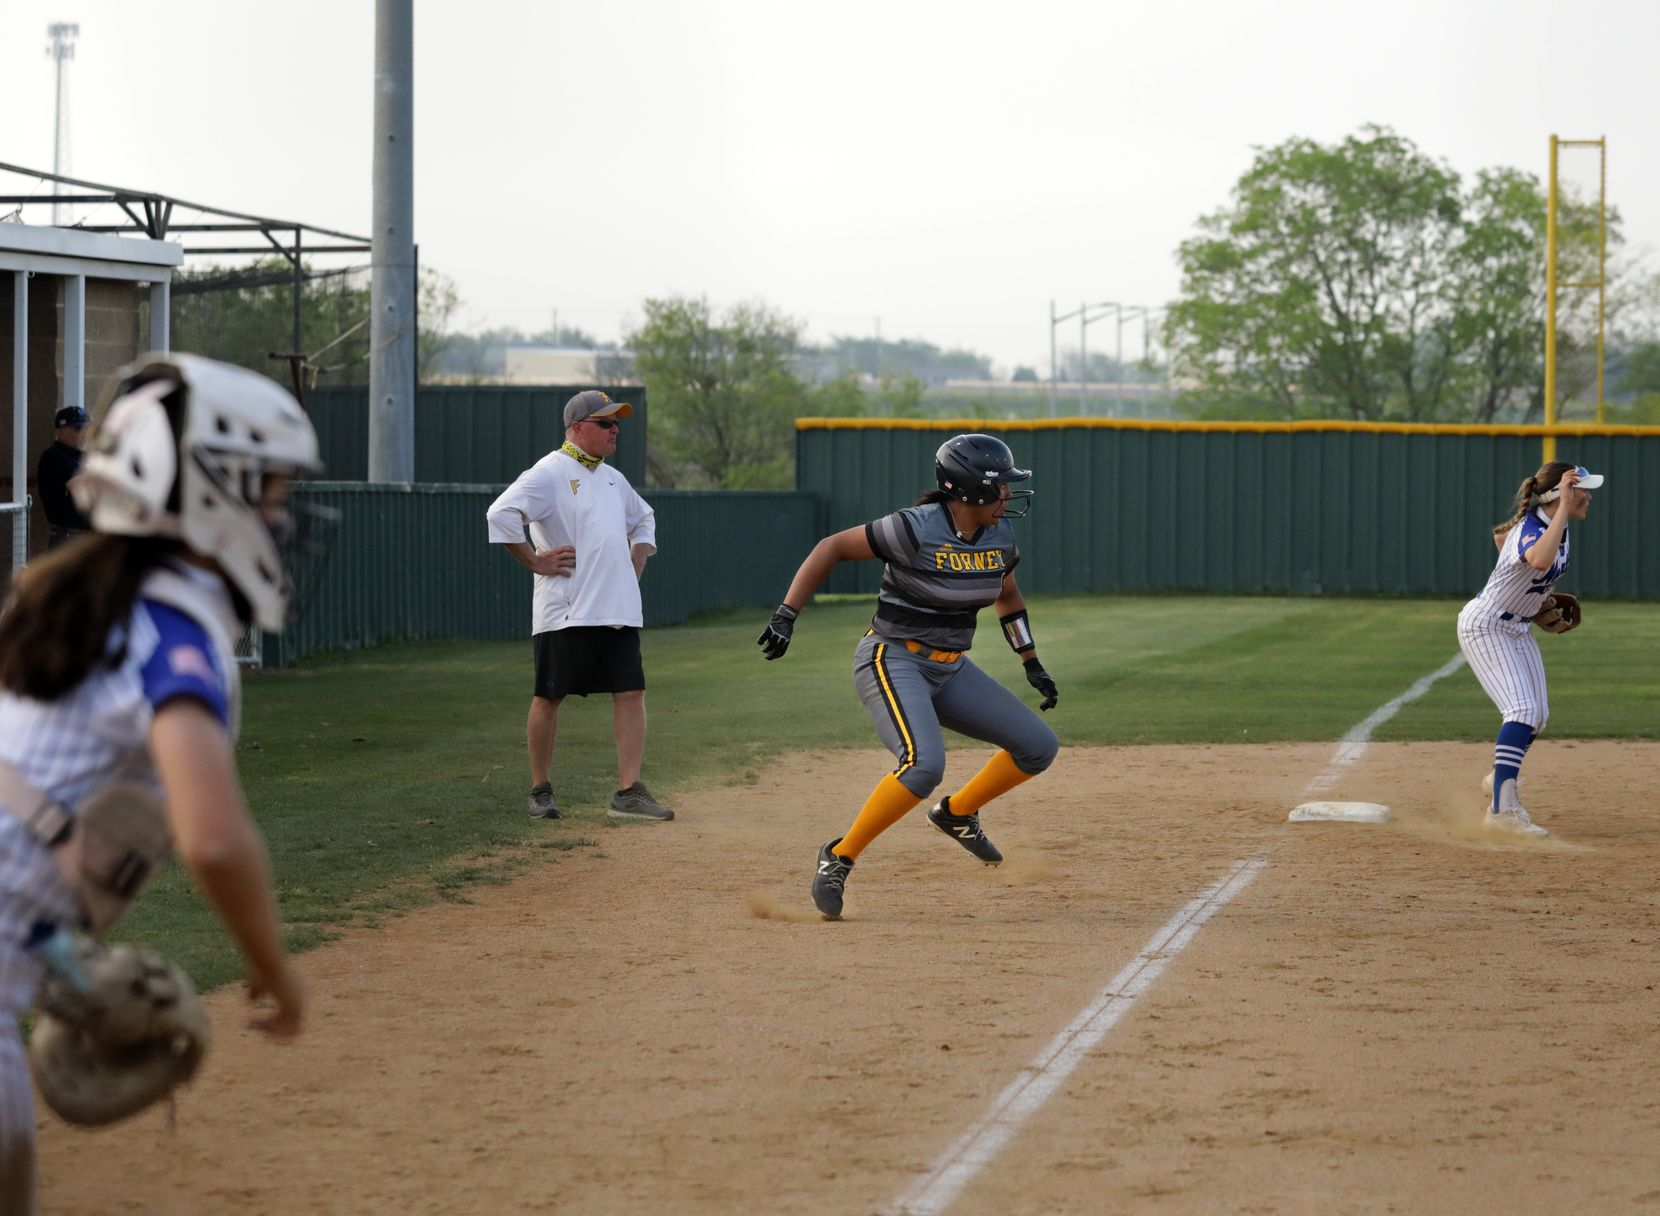 Vanessa Hollingsworth attempts to return to third base during a softball game between Forney at North Forney at North Forney High School in Forney, TX, on Apr. 9, 2021. (Jason Janik/Special Contributor)